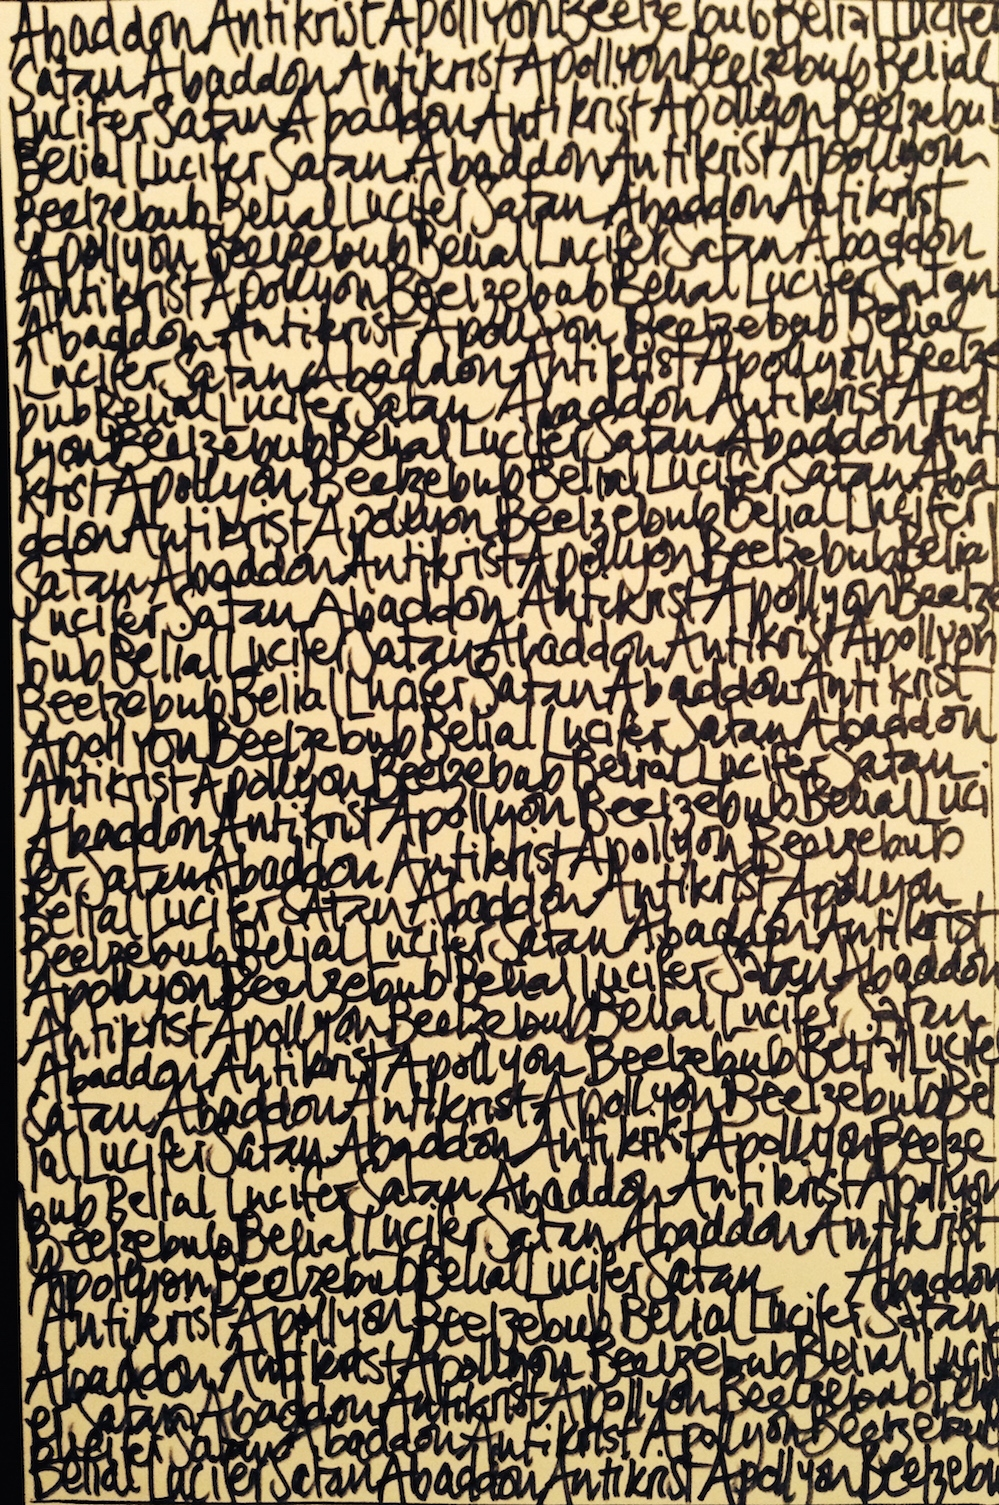 Devil´s palimpsest: will be finished when the ink spent writing Lucifer´s names blackens the entire page, at which point He appears in person.